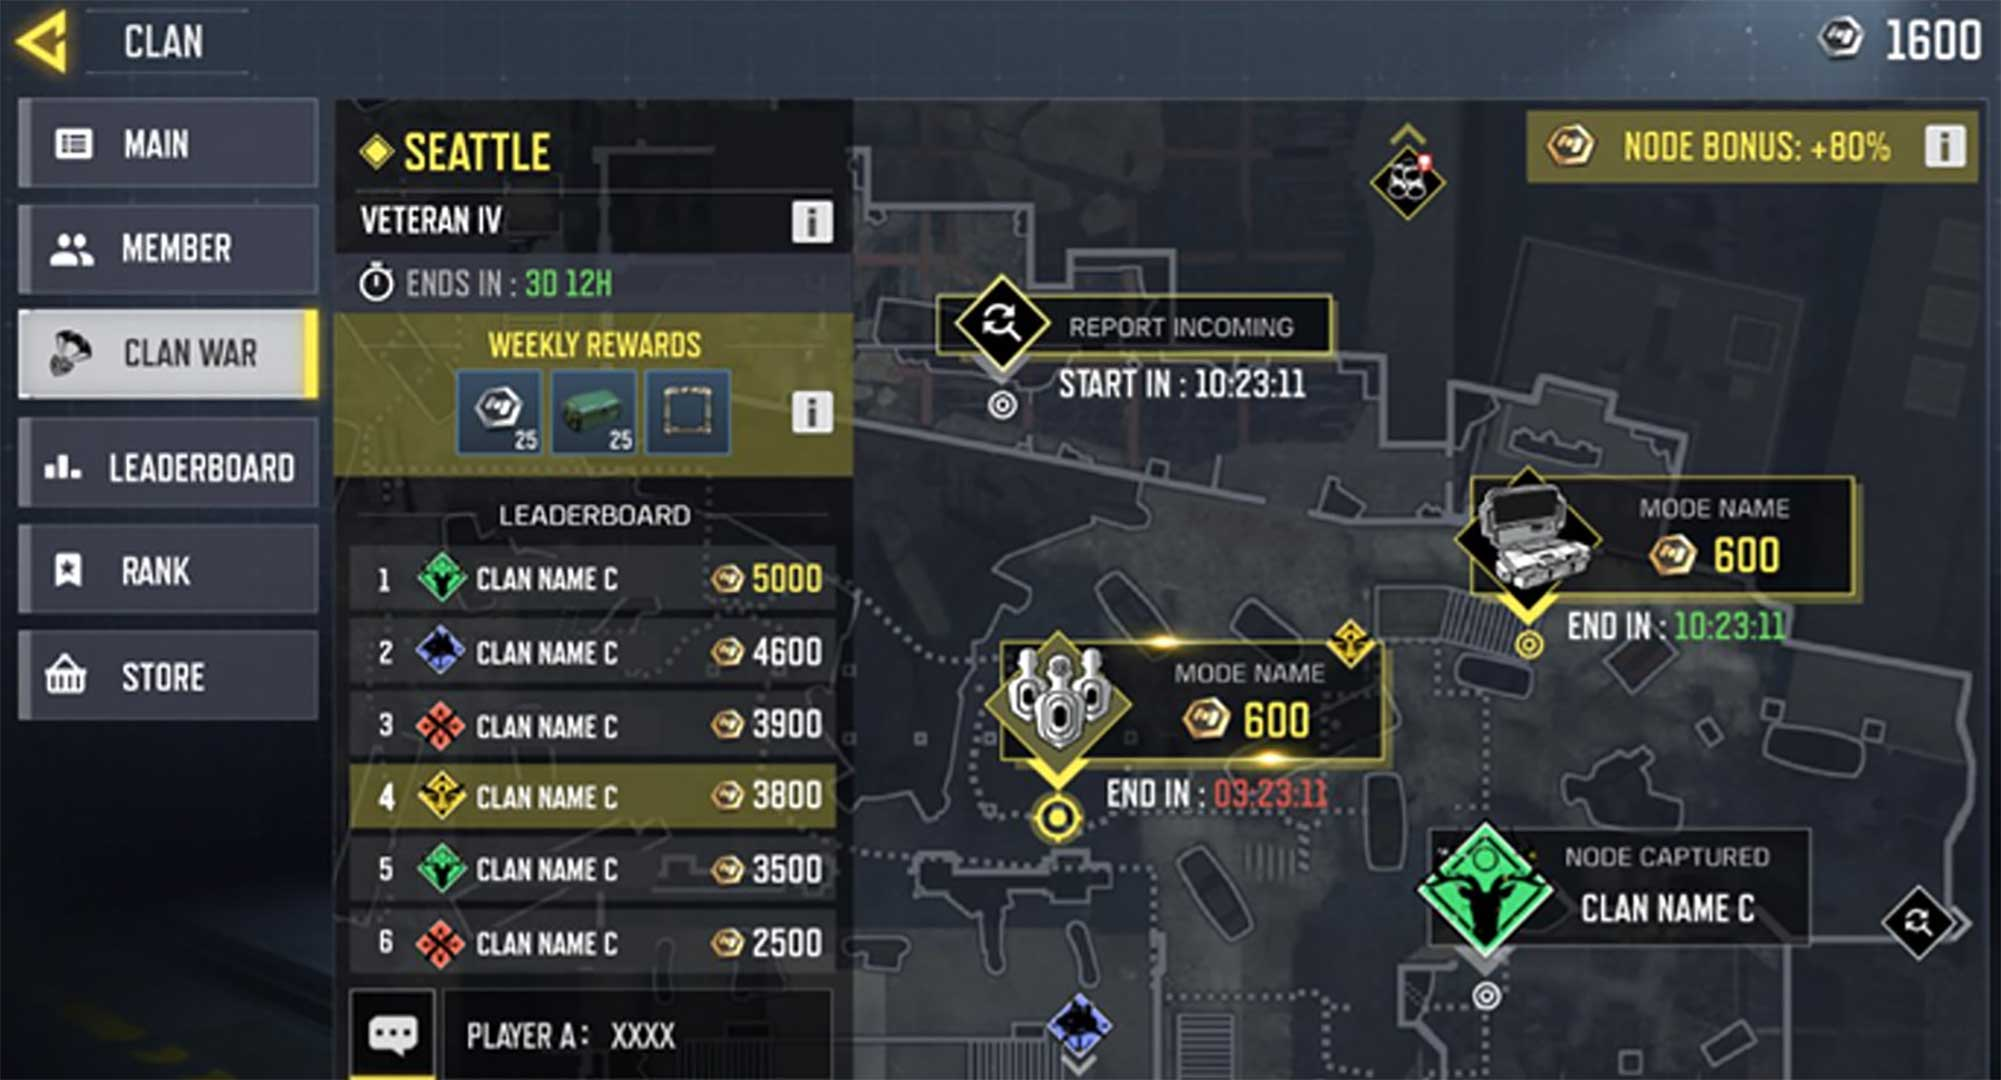 Call of Duty: Mobile Clan Wars – All You Need to Know About this New Game Mode